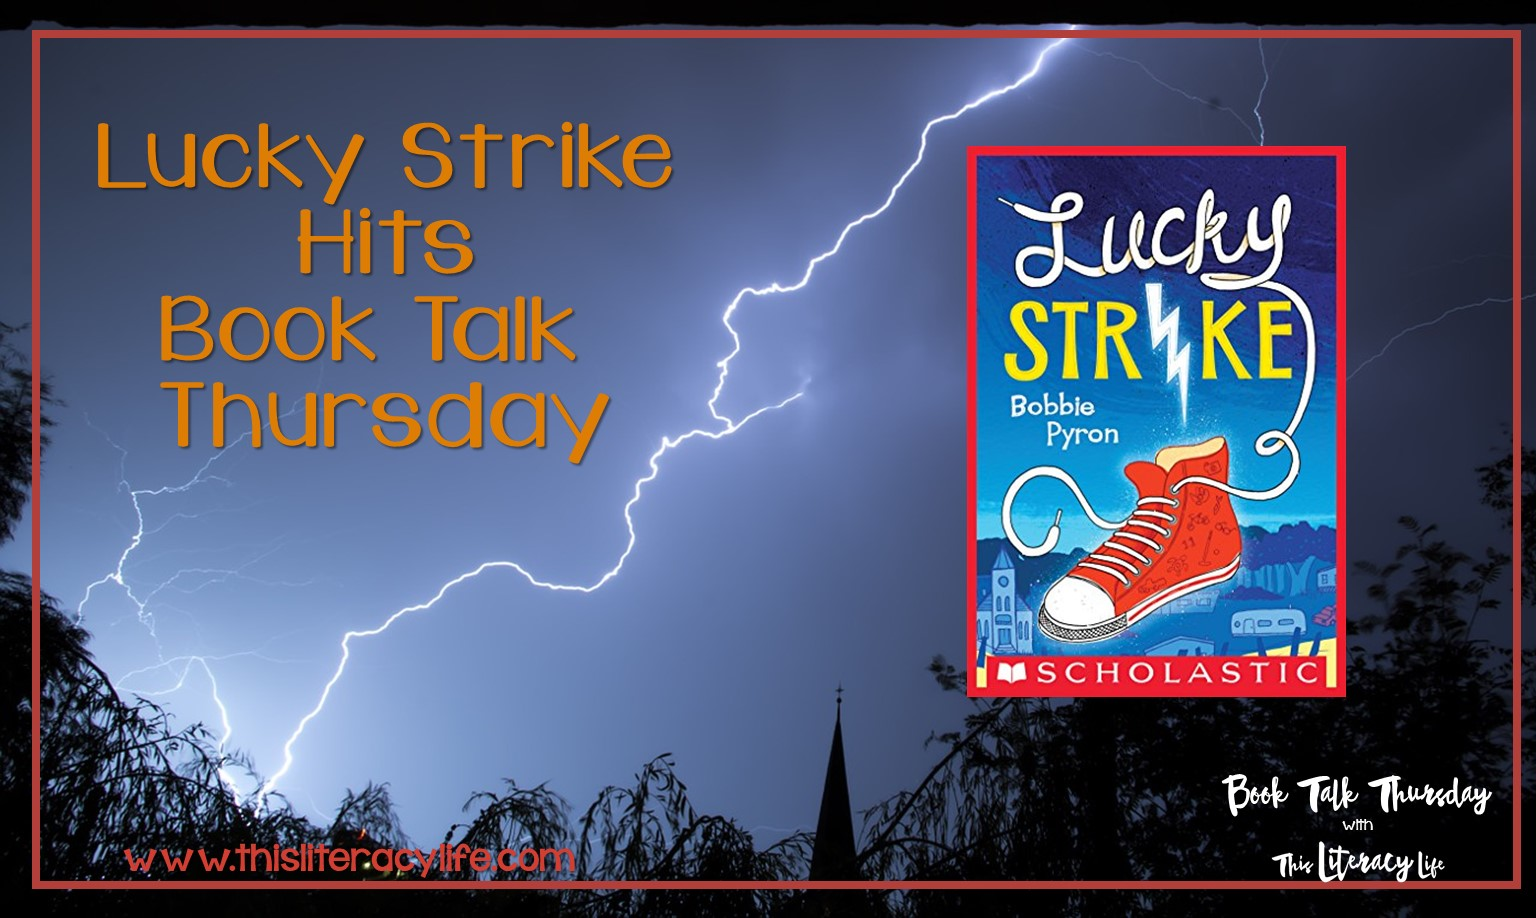 What happens when lightning strikes on your 11th birthday? Find out what happens to Nate in the book Lucky Strike!